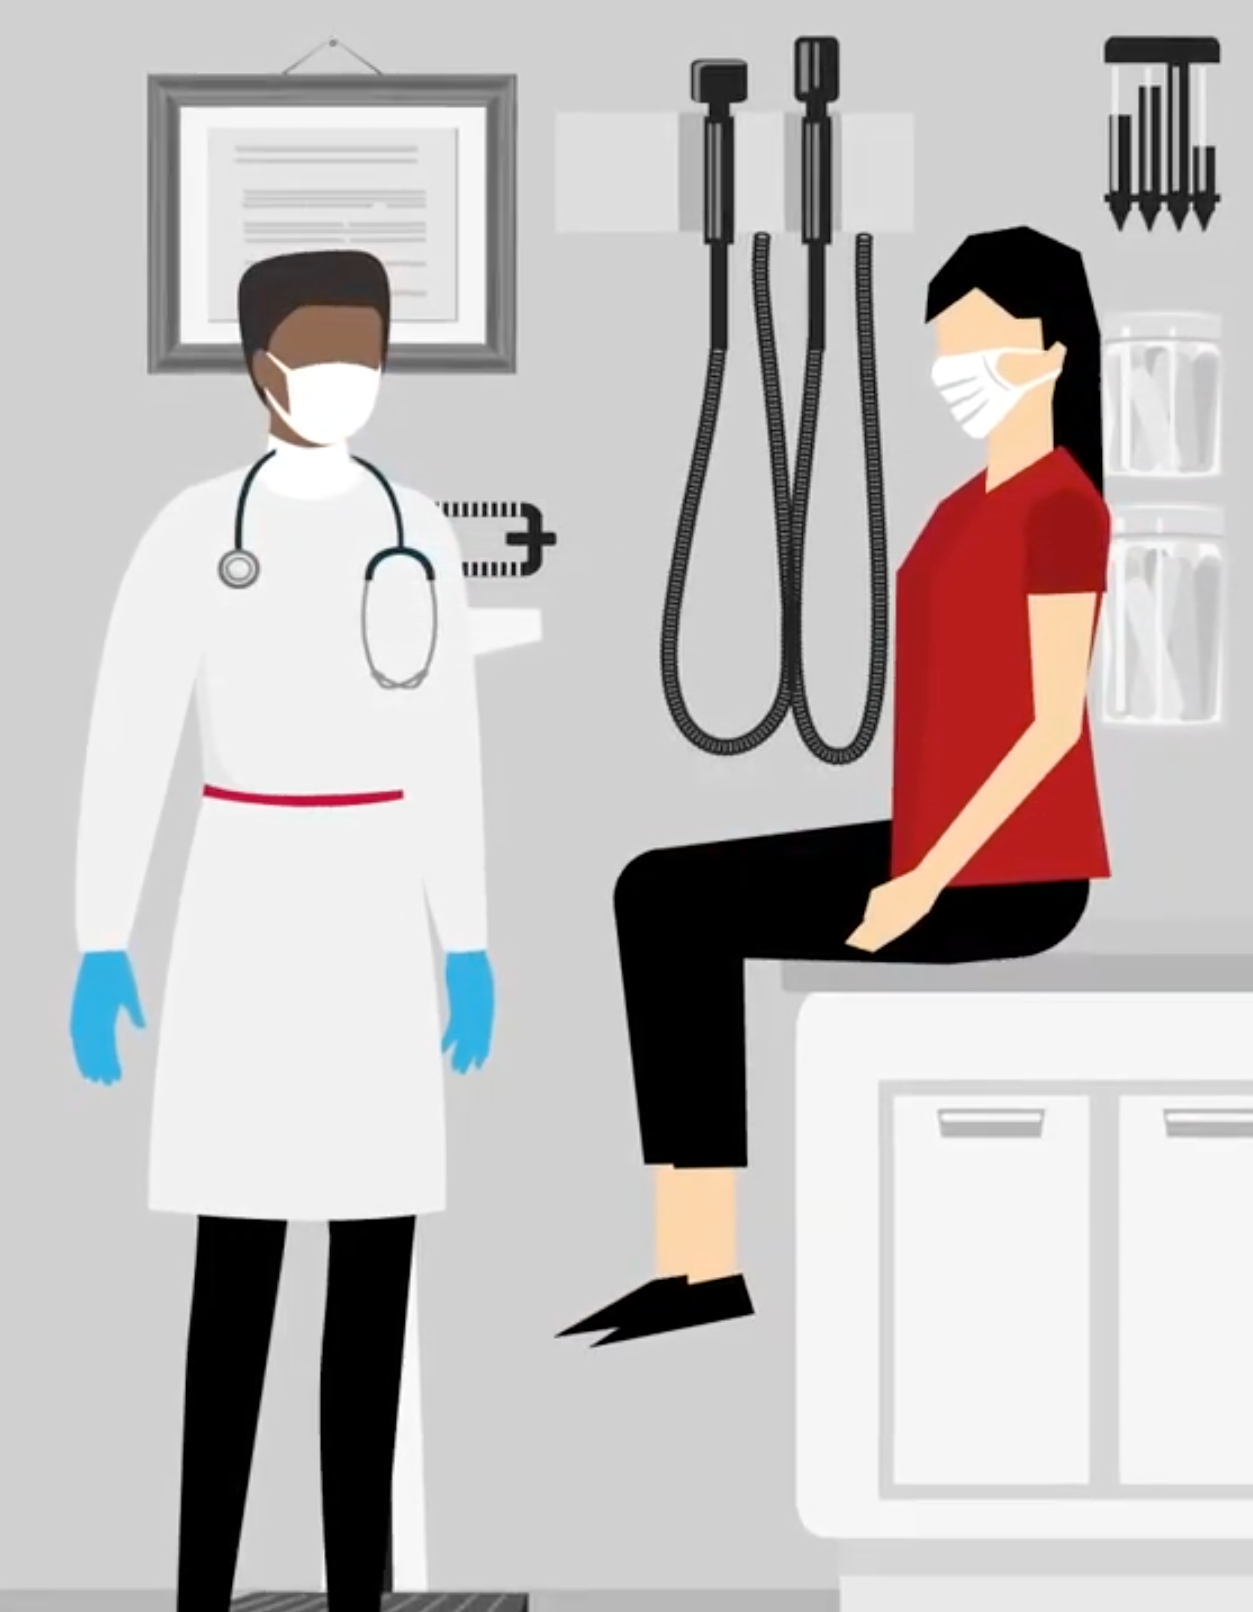 Image of a physician speaking with a patient